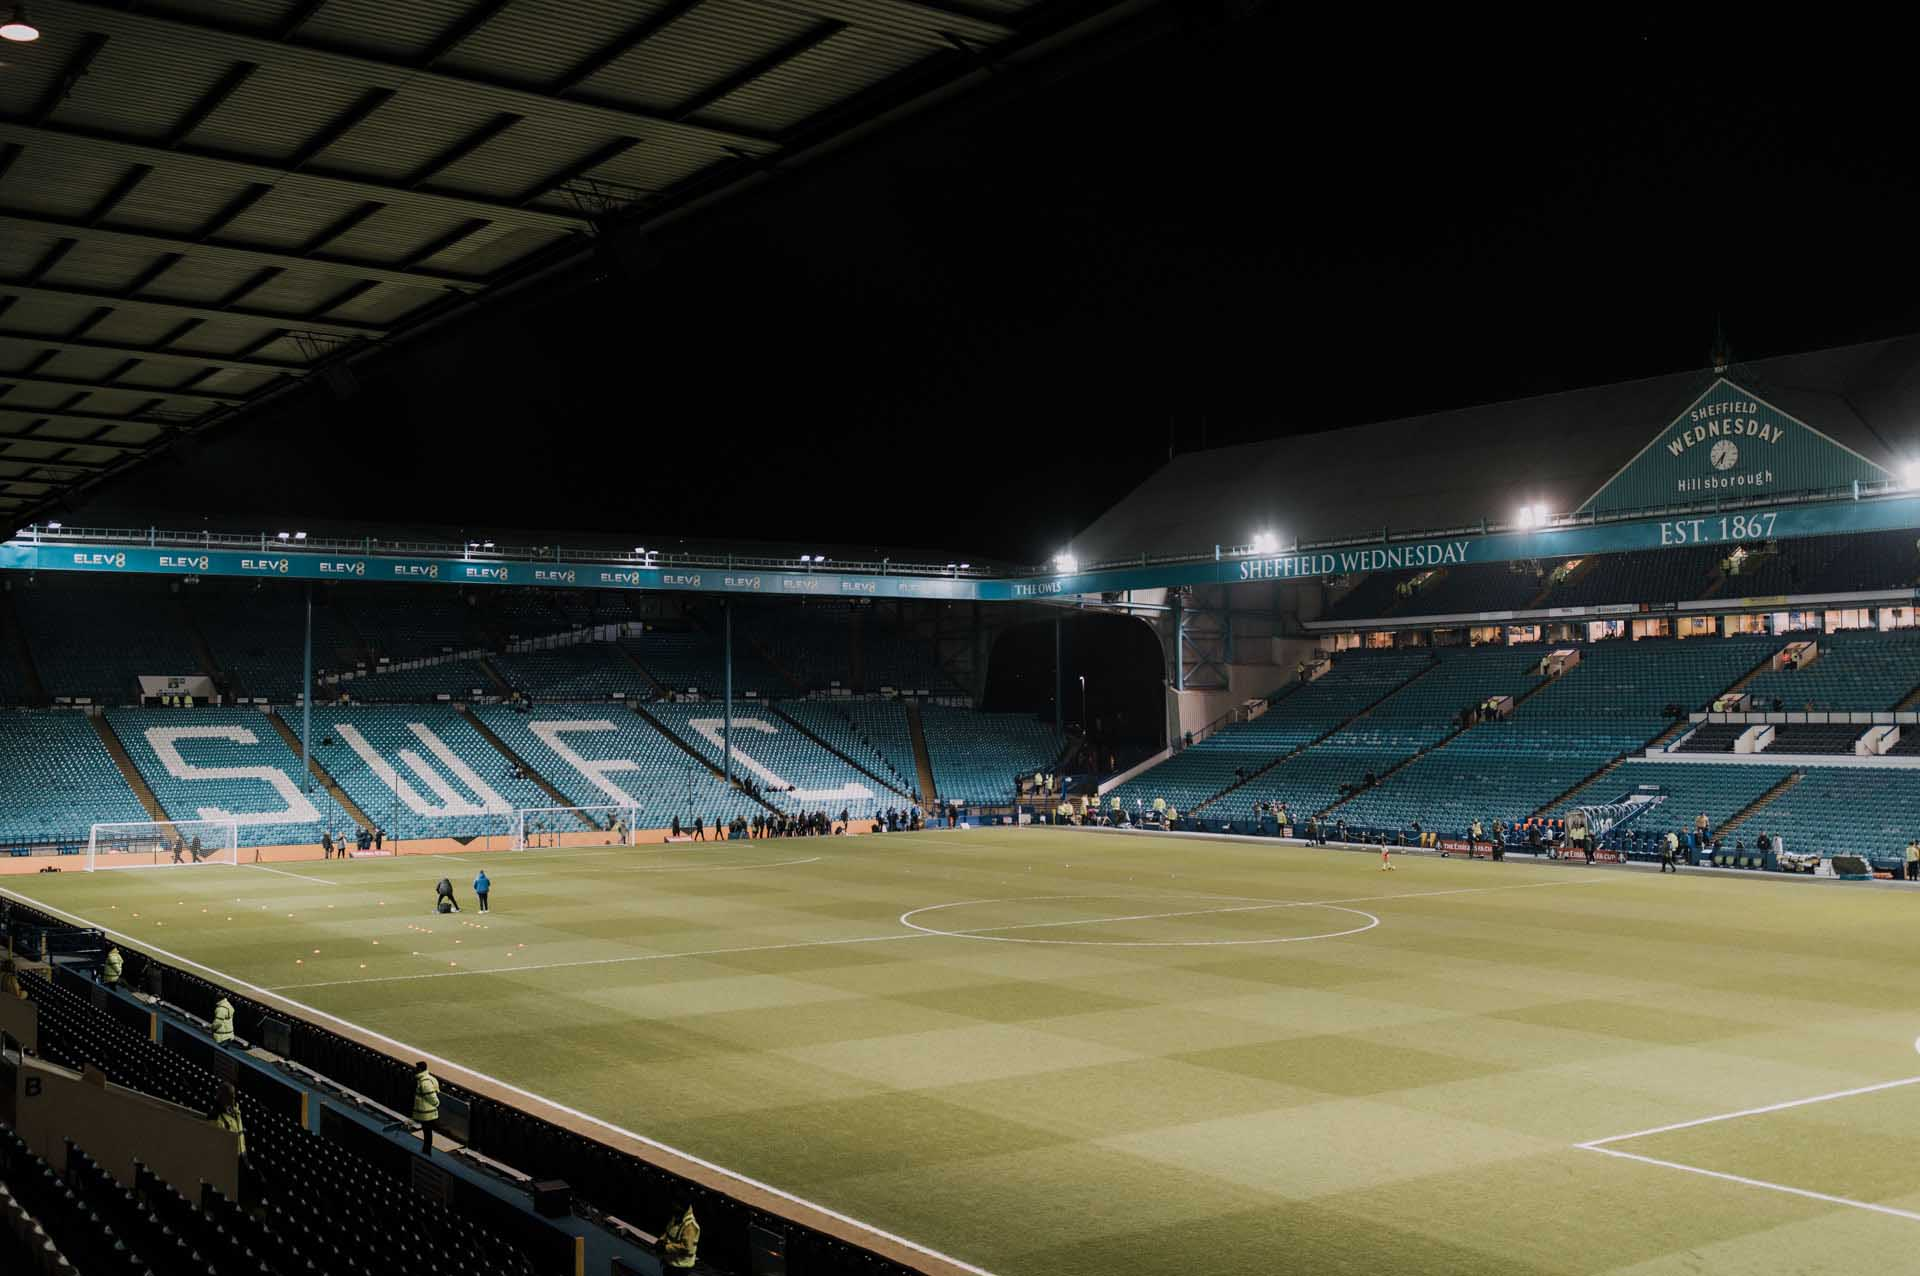 h-sheffield-wednesday-manchester-city-framed-min.jpg